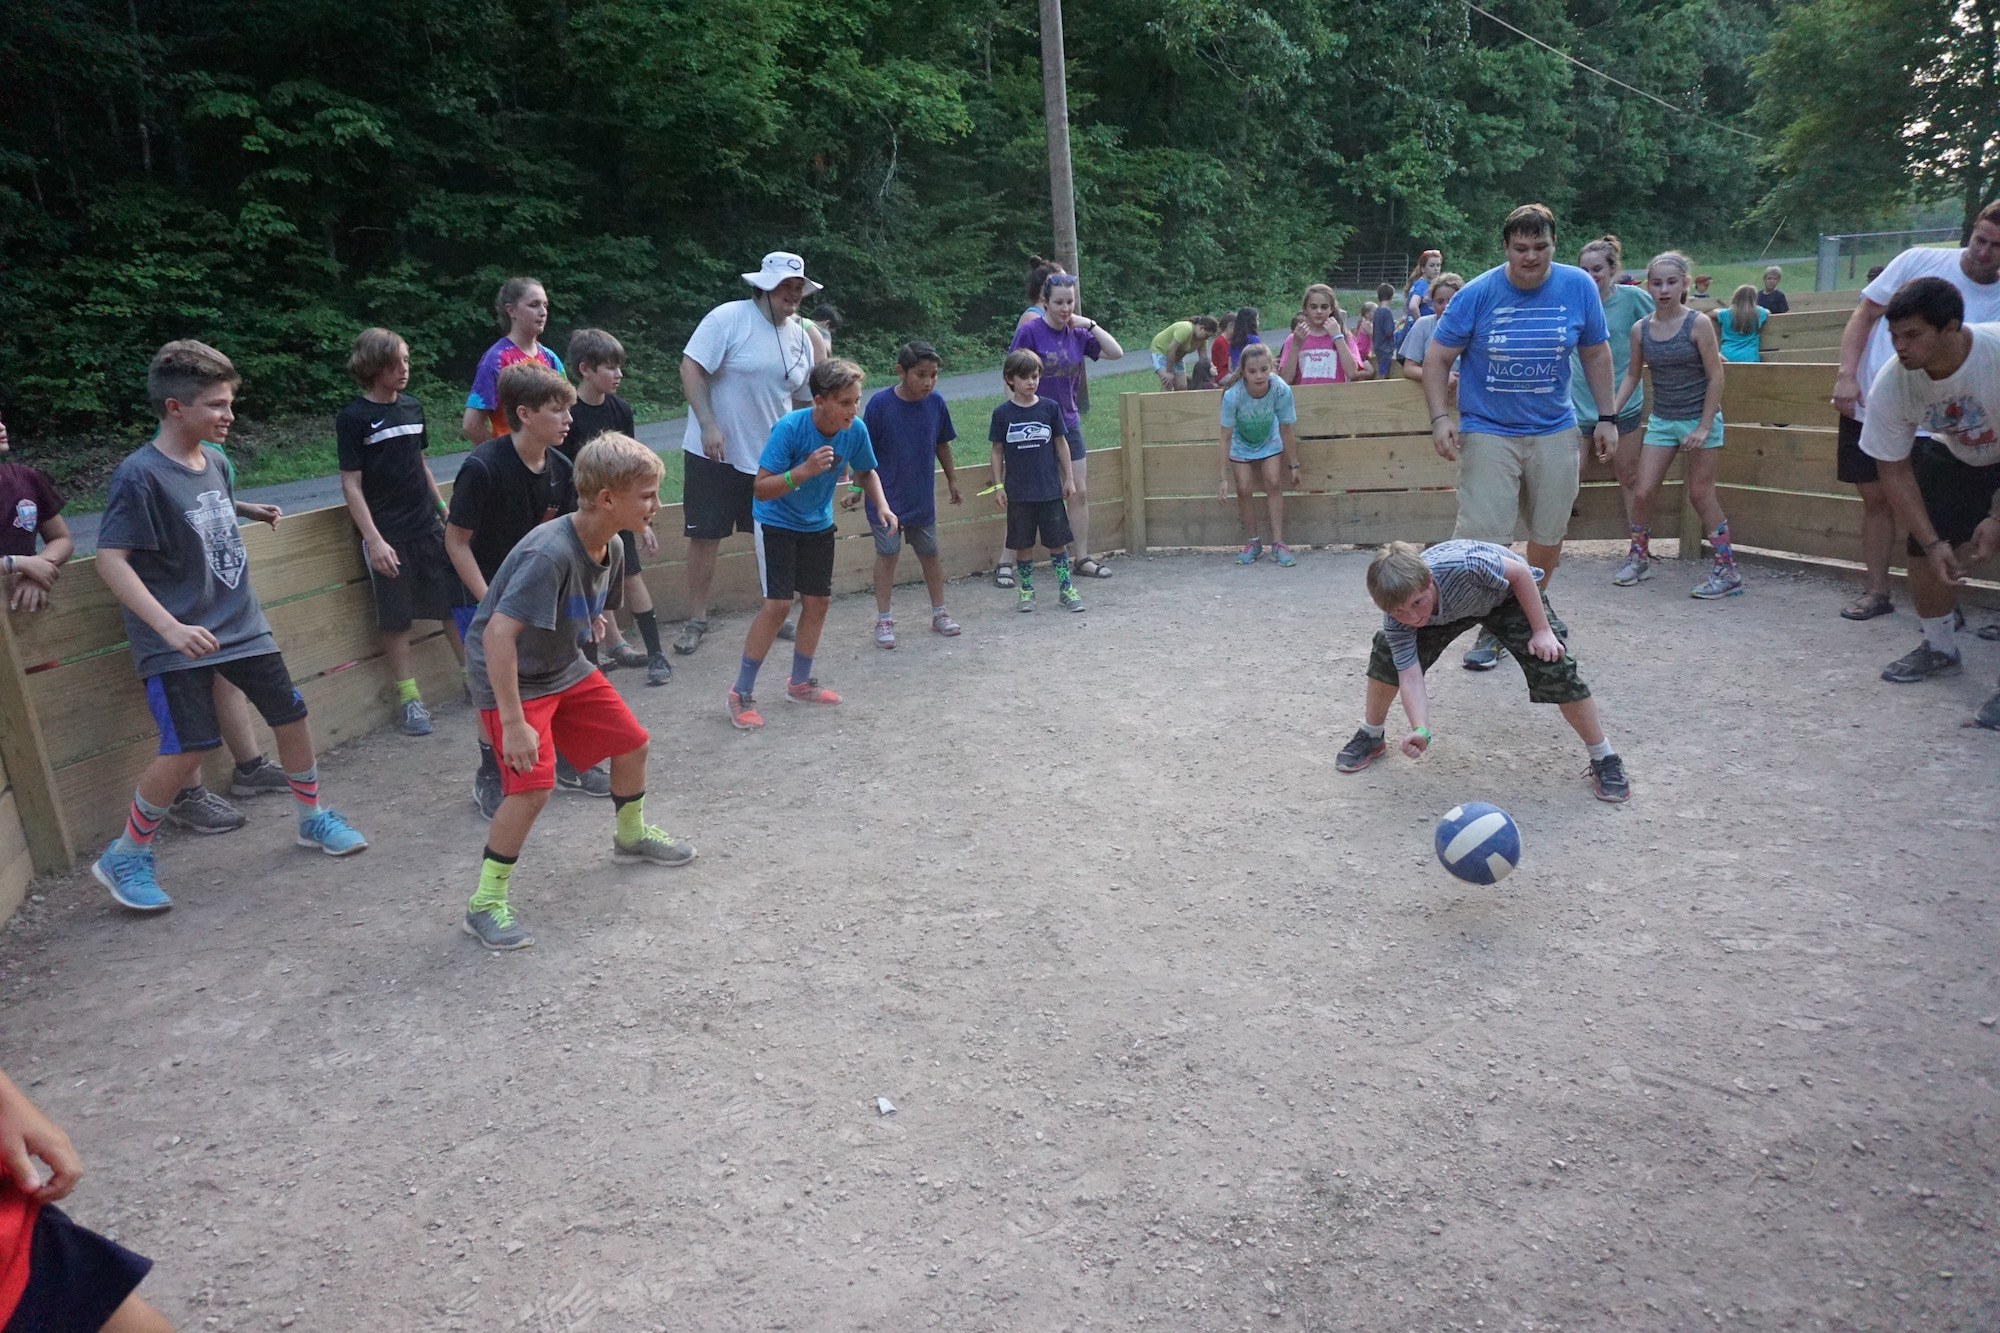 A circle of Summer Campers playing a game with a ball - NaCoMe Camp & Conference Center